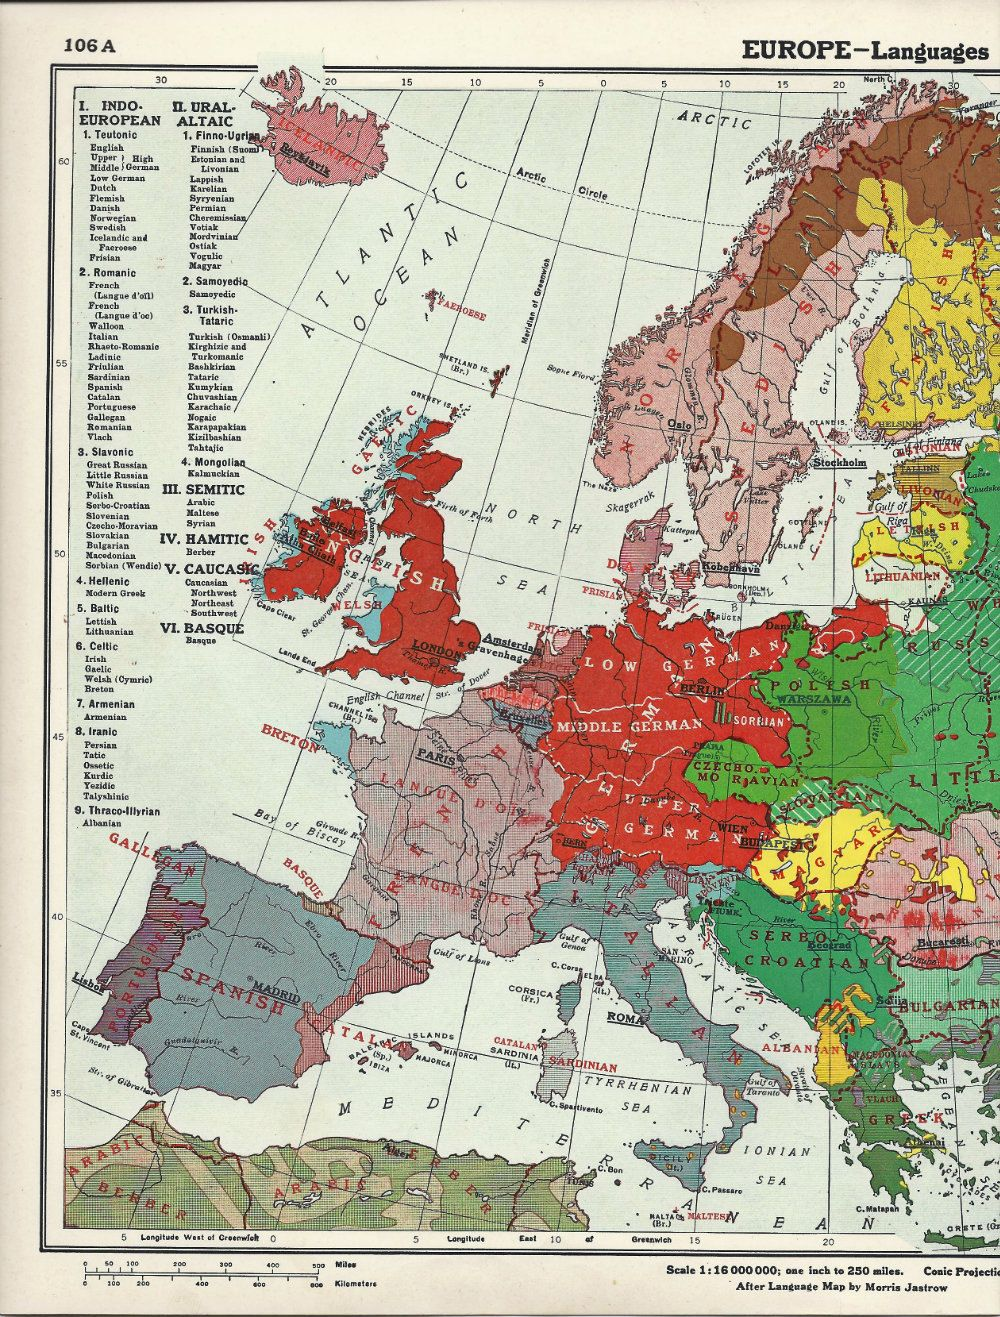 vintage map of European languages circa 1939 - 3.50 | Europe ...